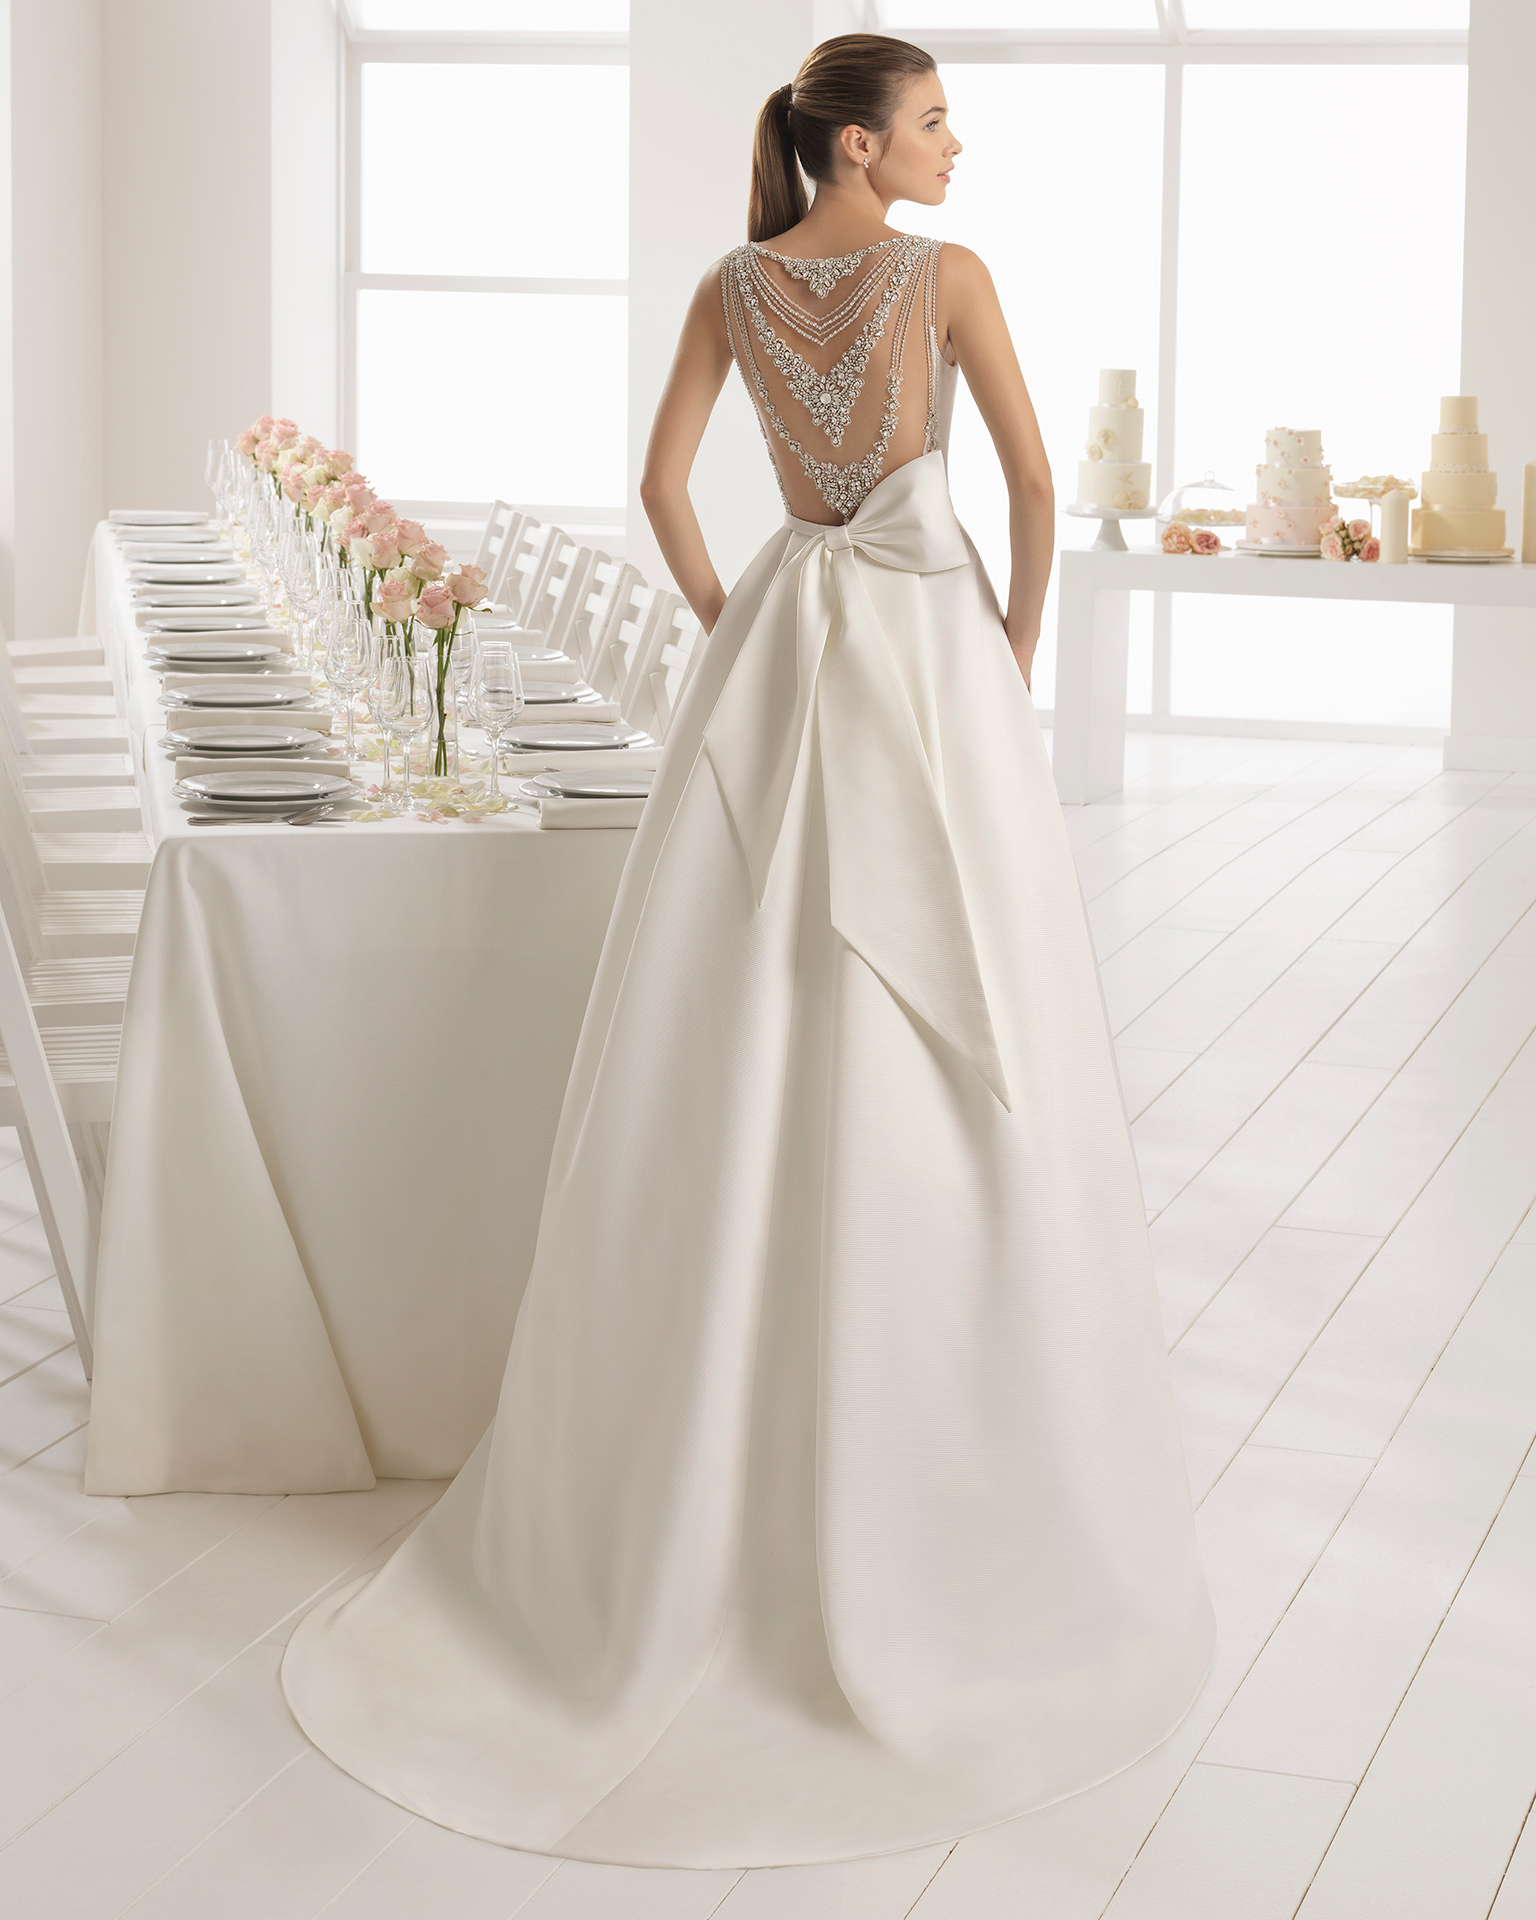 Classic-style ottoman wedding dress with bateau neckline and jeweled back.